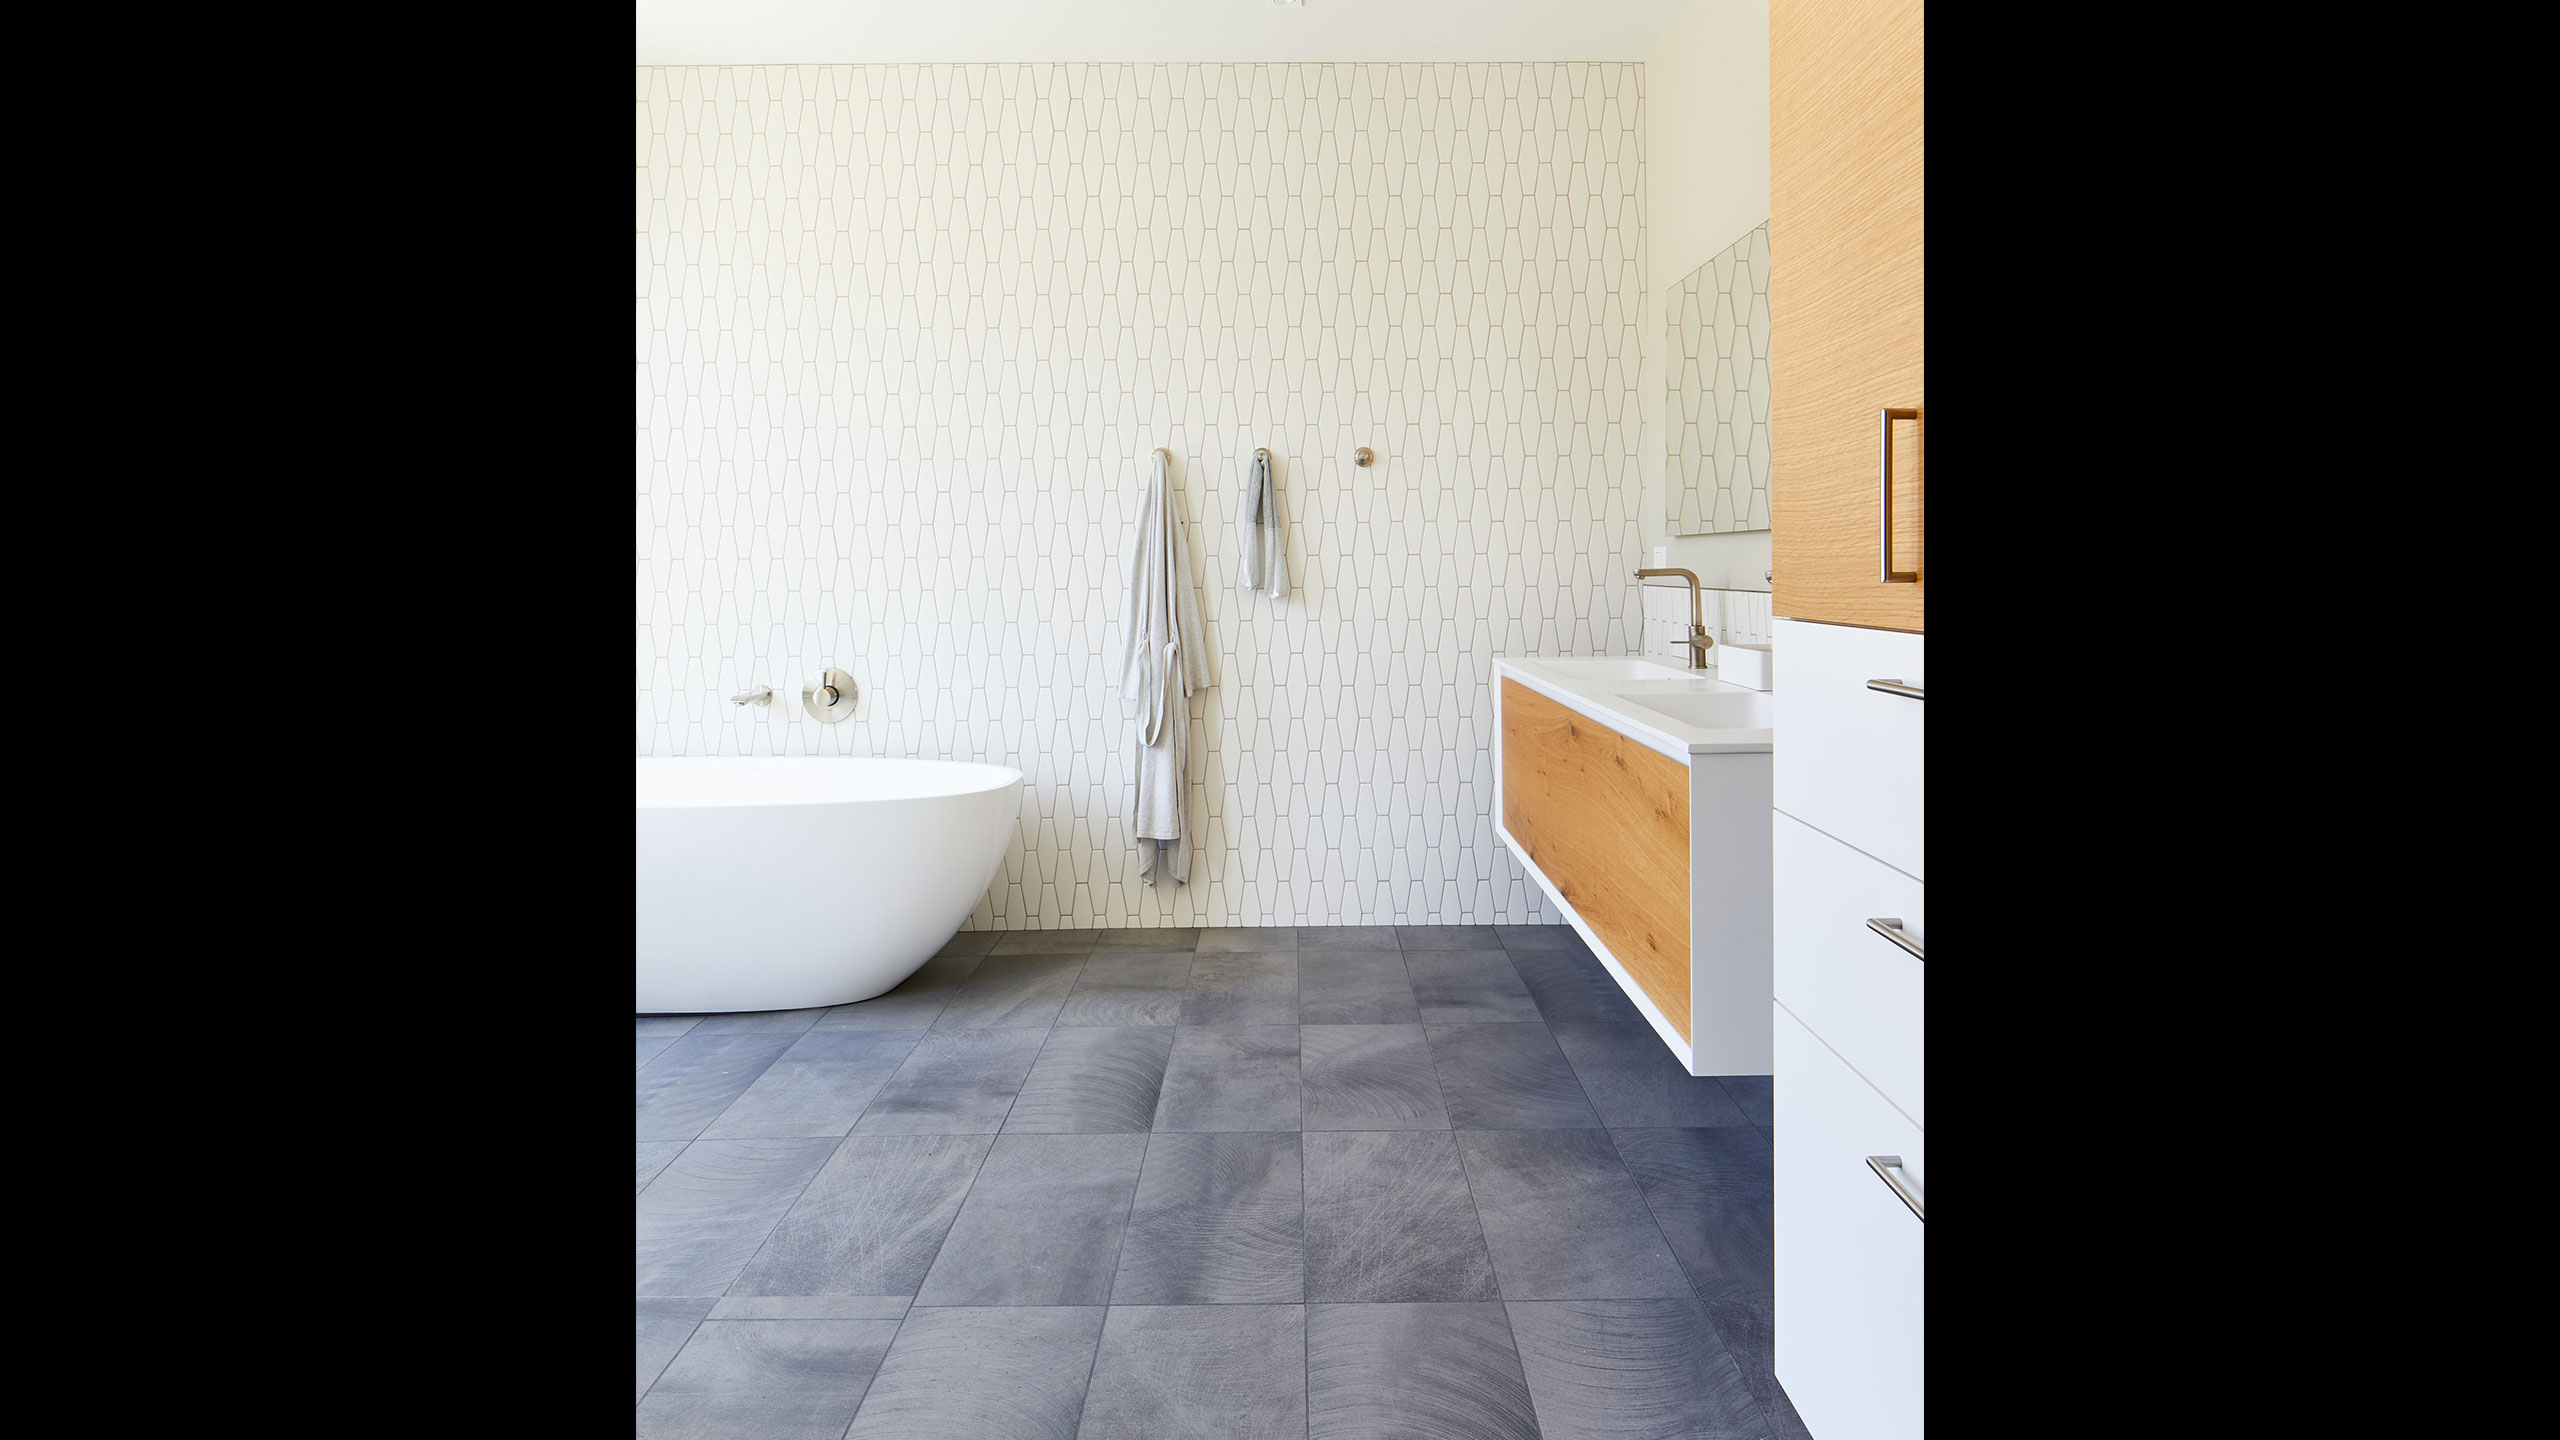 Farmhouse-Interior-Design-Sonoma-County-7-contemporary-bathroom-with-tub-grey-and-white-tile